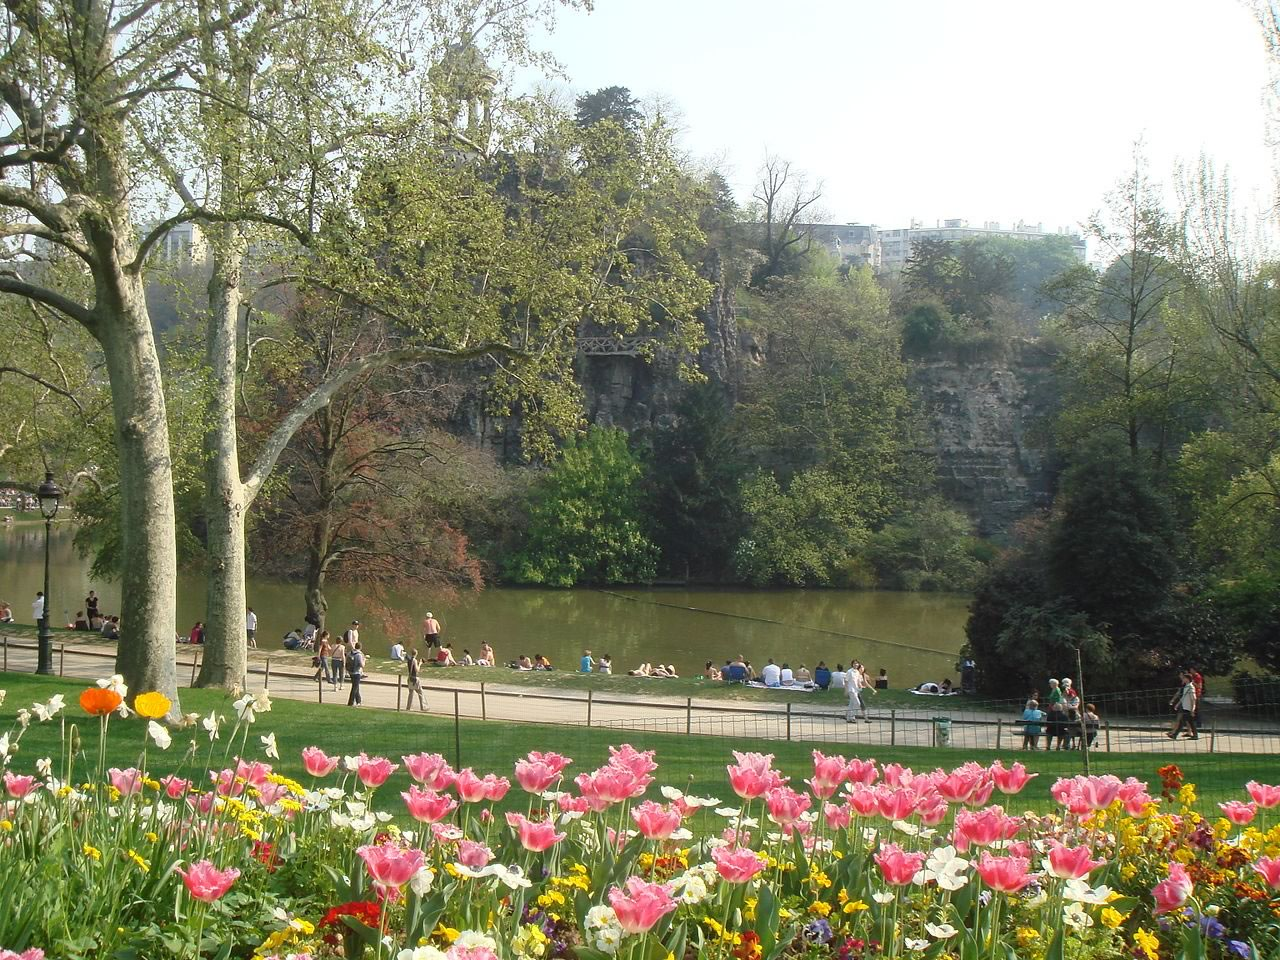 1280px-parc_buttes_chaumont_paris_france_spring_2007